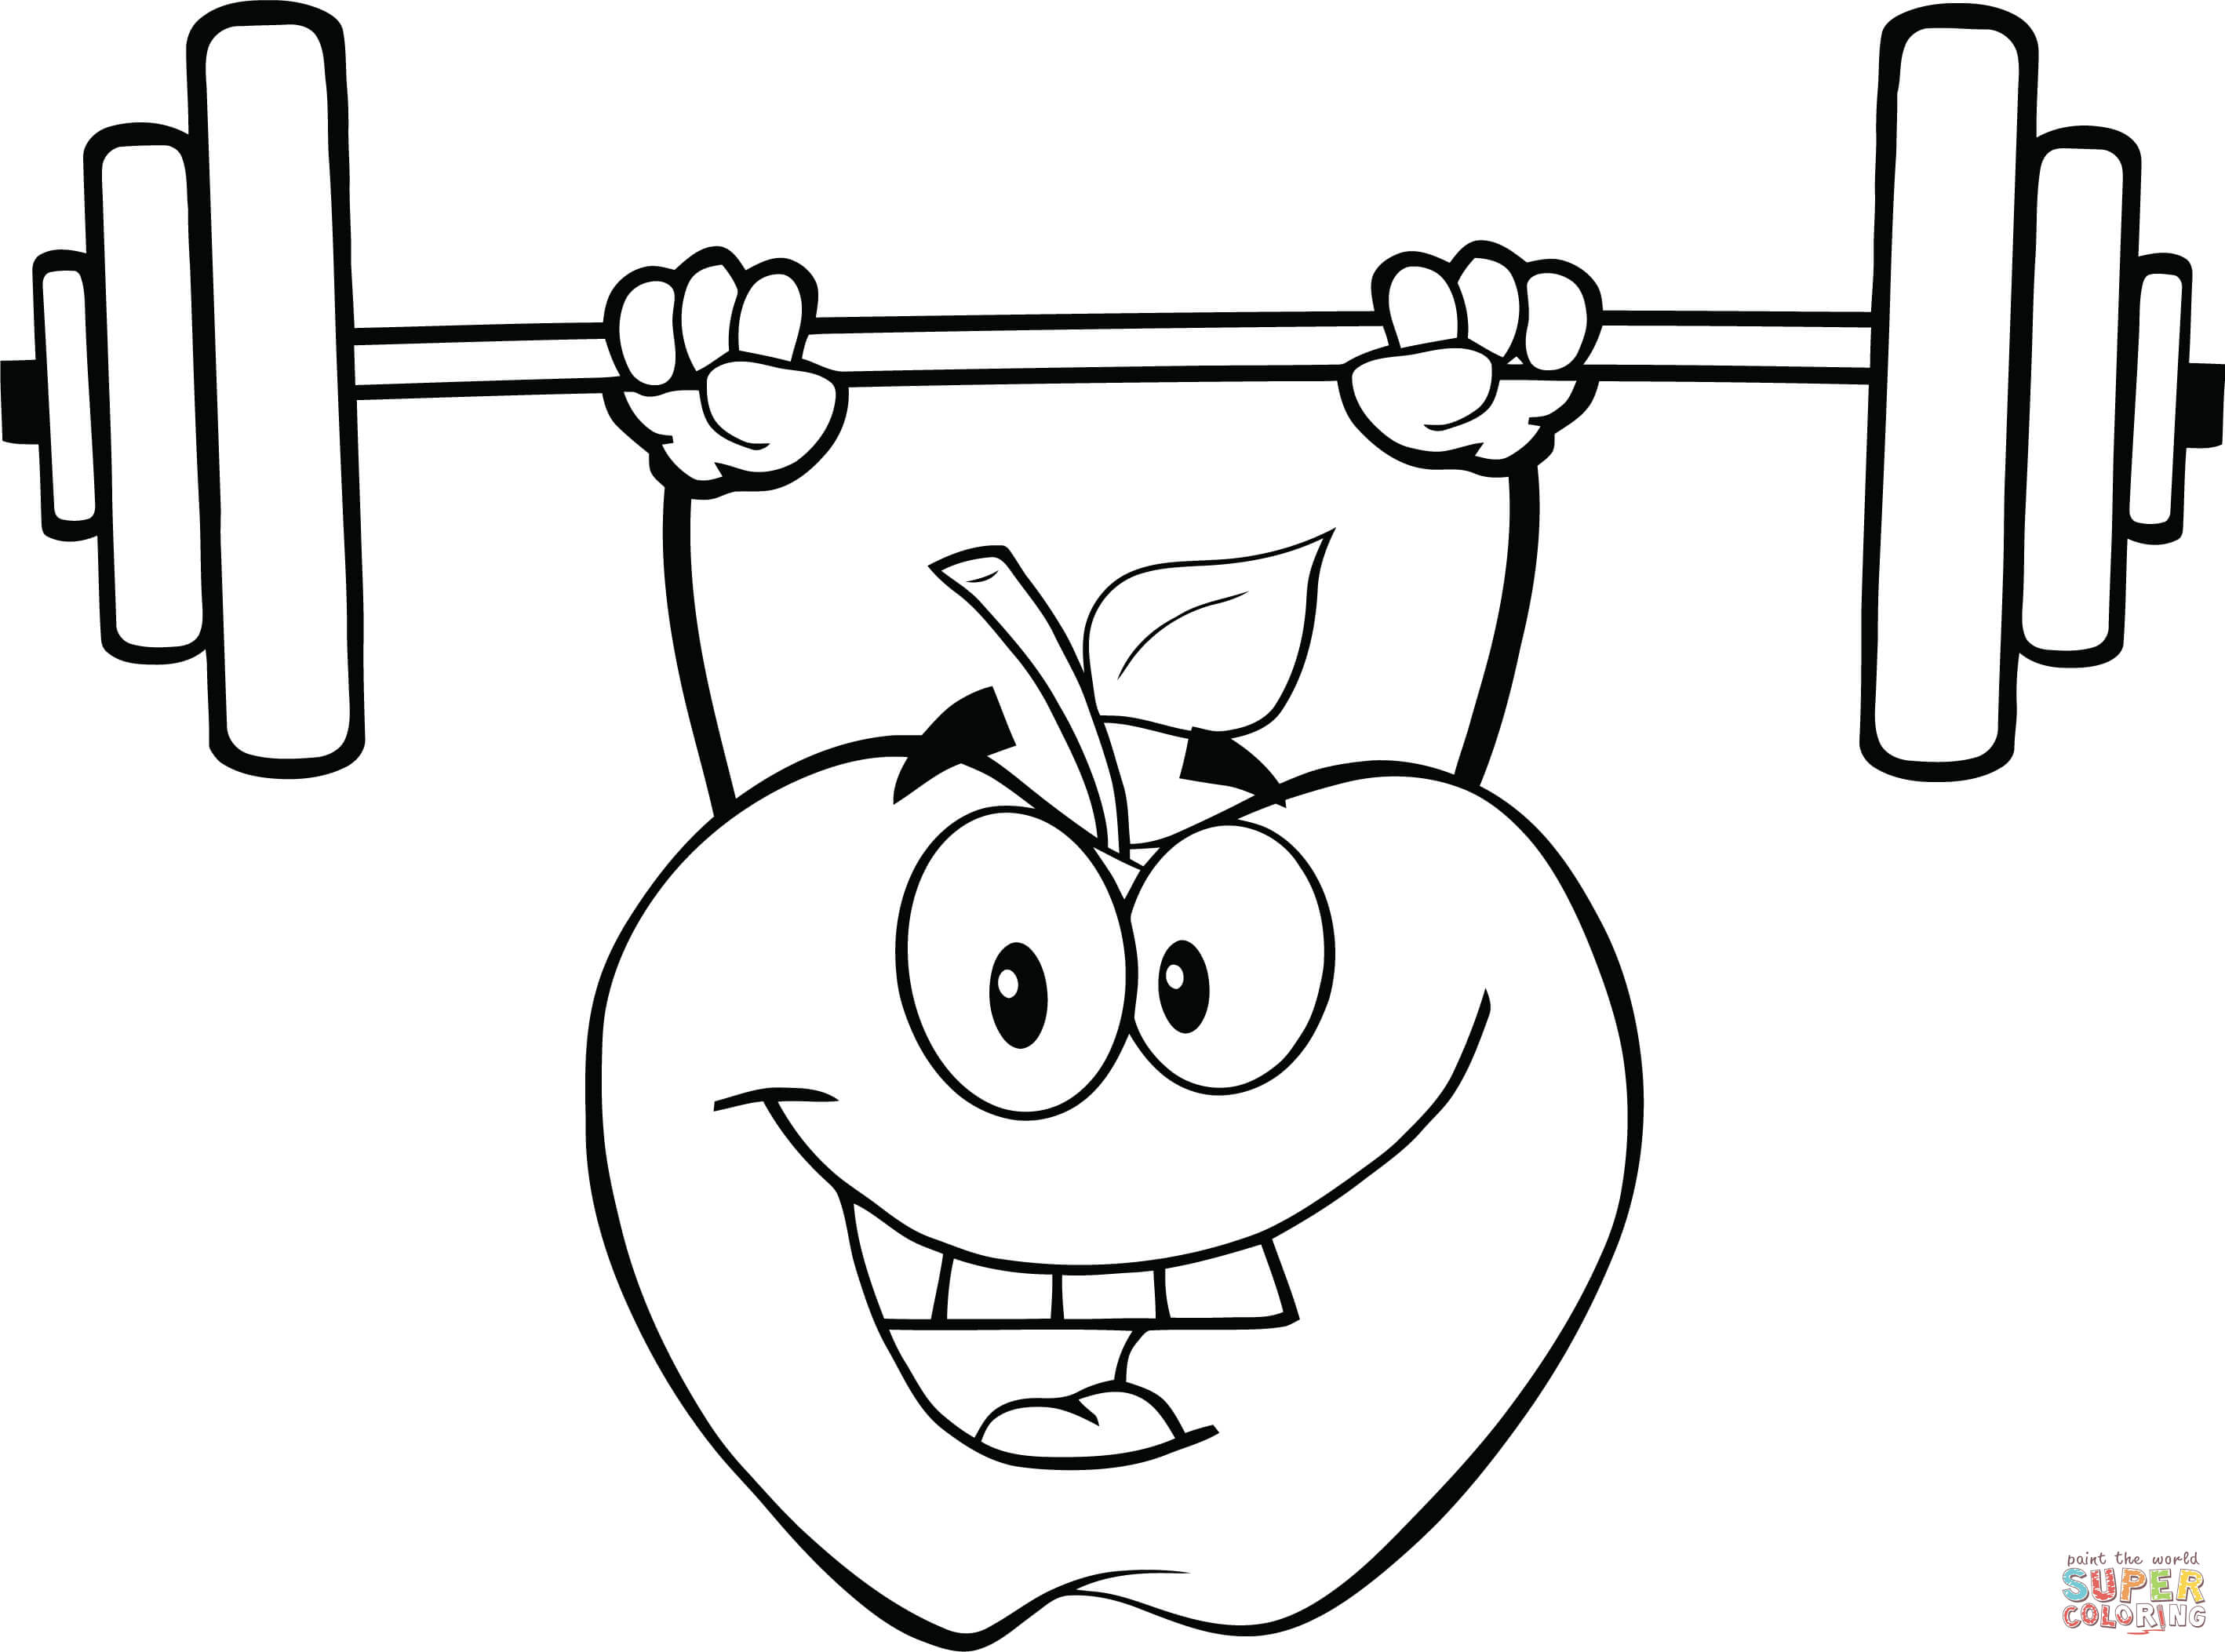 coloring pages weightlifter - photo#22